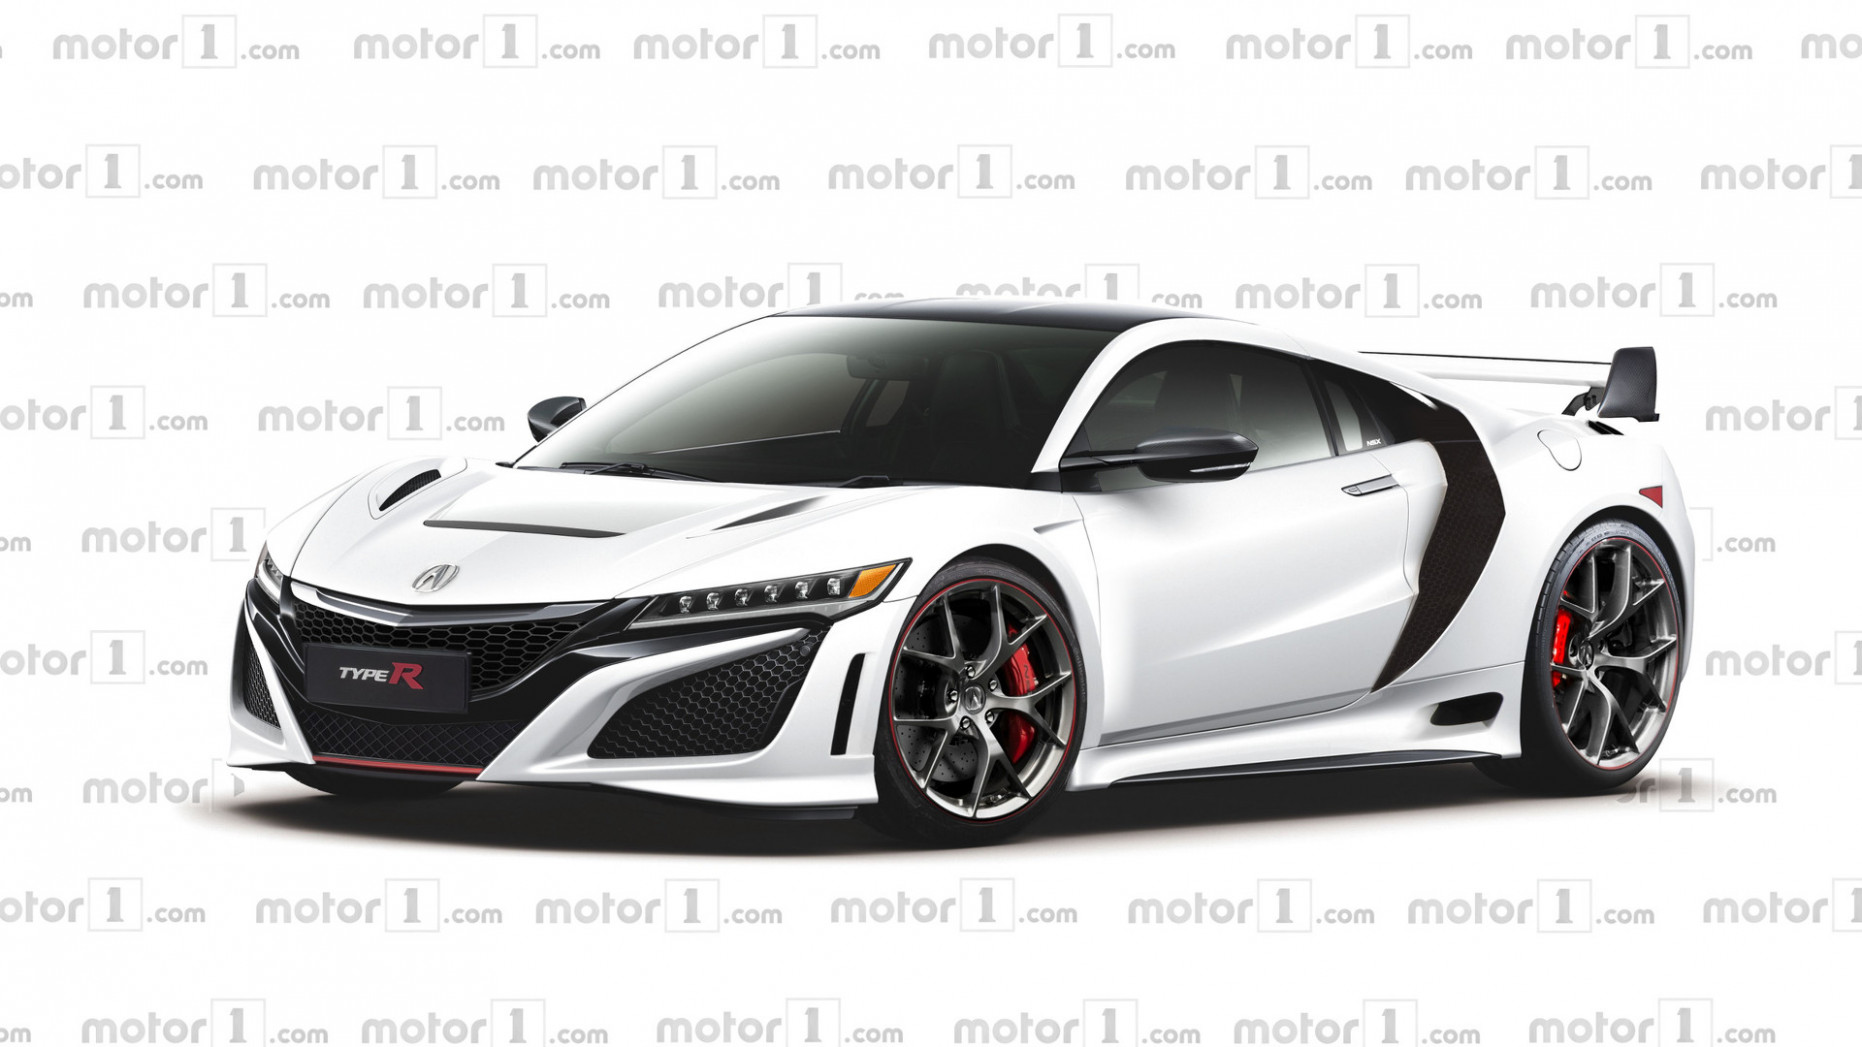 Redesign and Review 2022 Honda Nsx